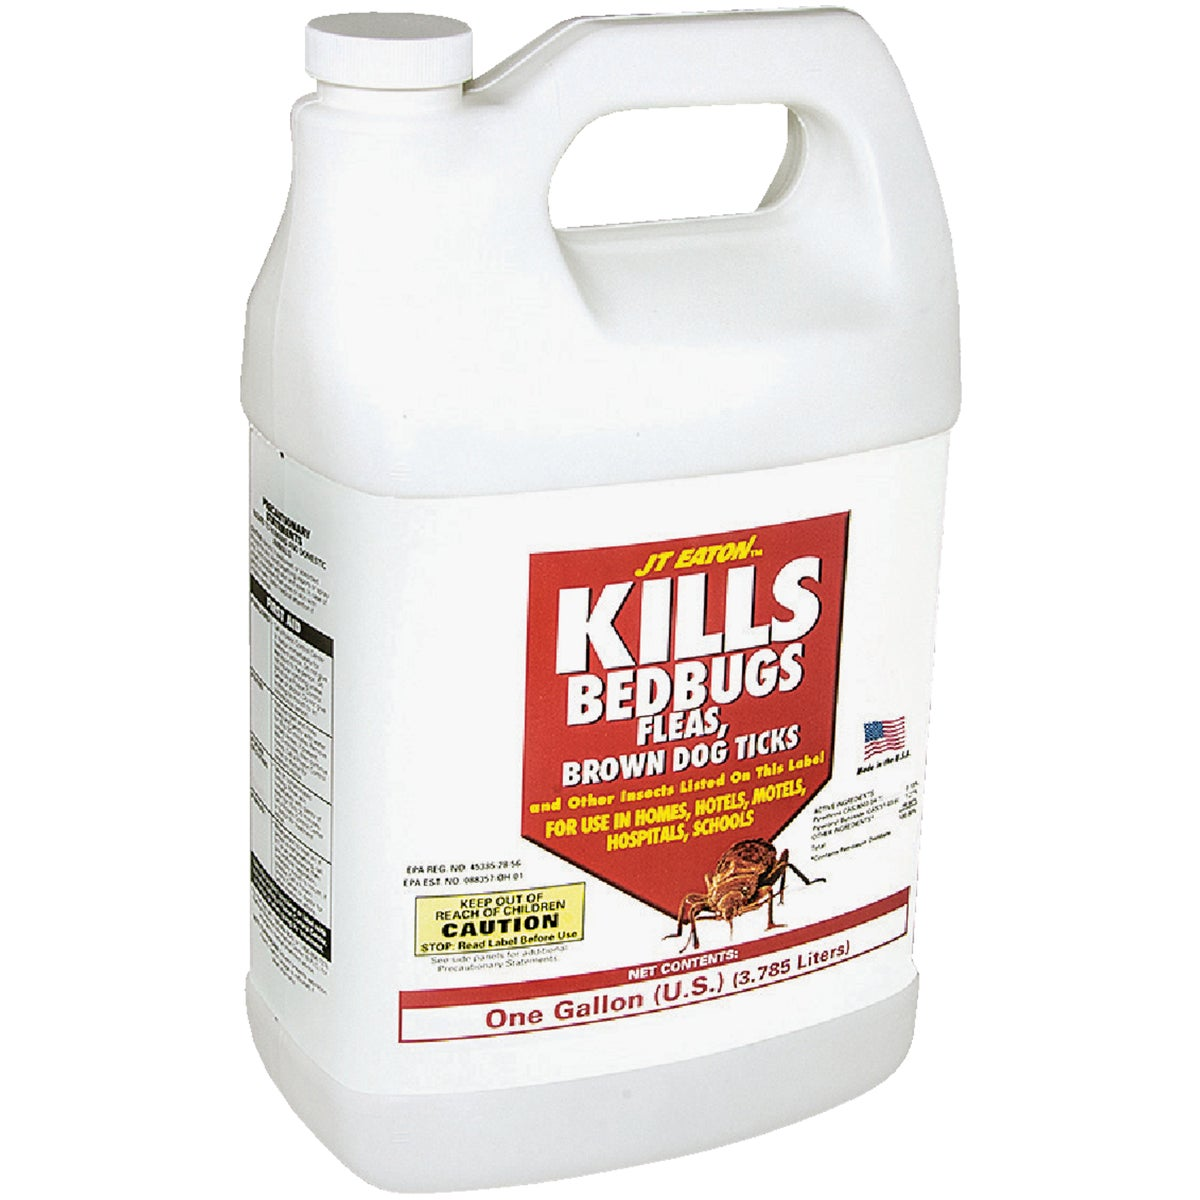 GAL OIL BAS BEDBUG SPRAY - 20401G by Jt Eaton & Co